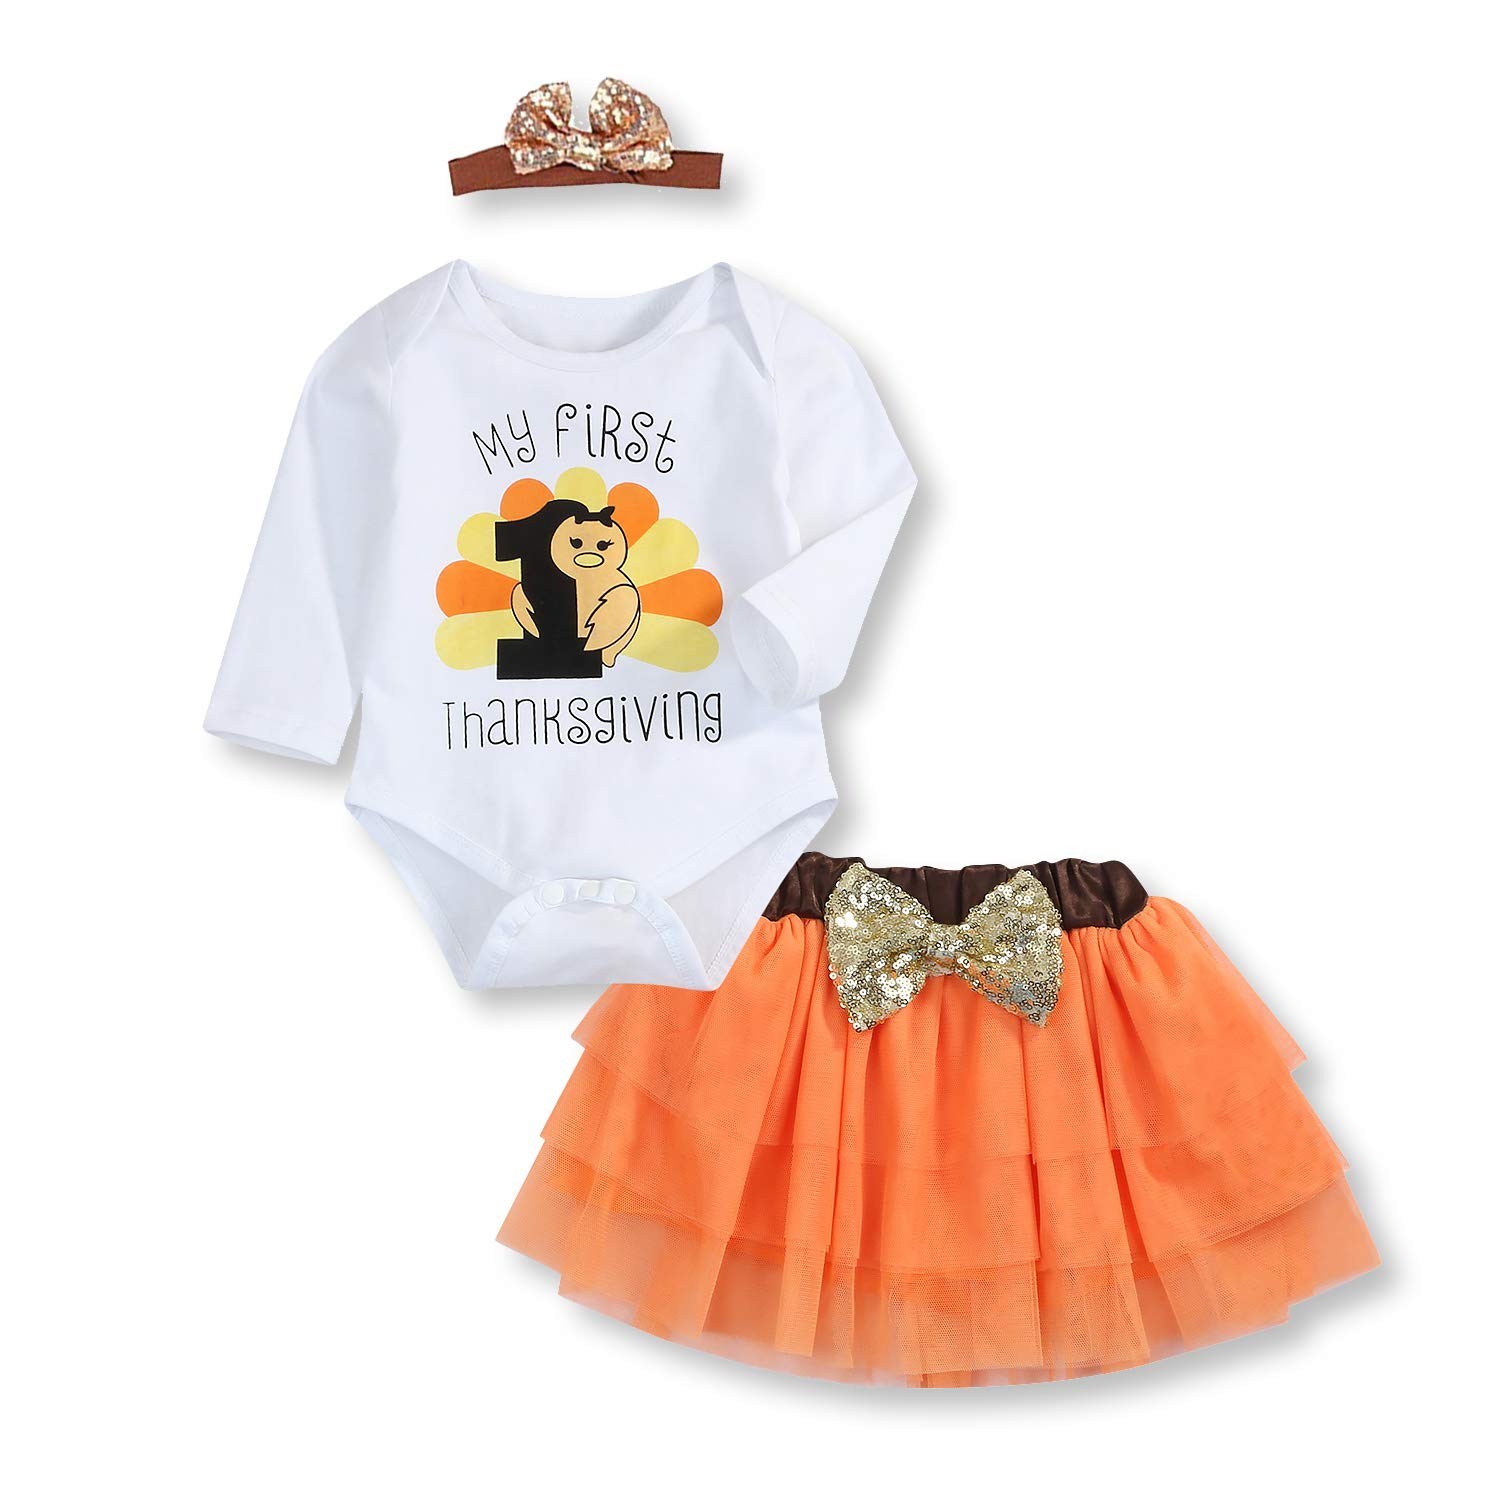 3Pcs Baby Girl My First Thanksgiving Outfit Turkey Print Romper+Skirt+Headband Clothes Set